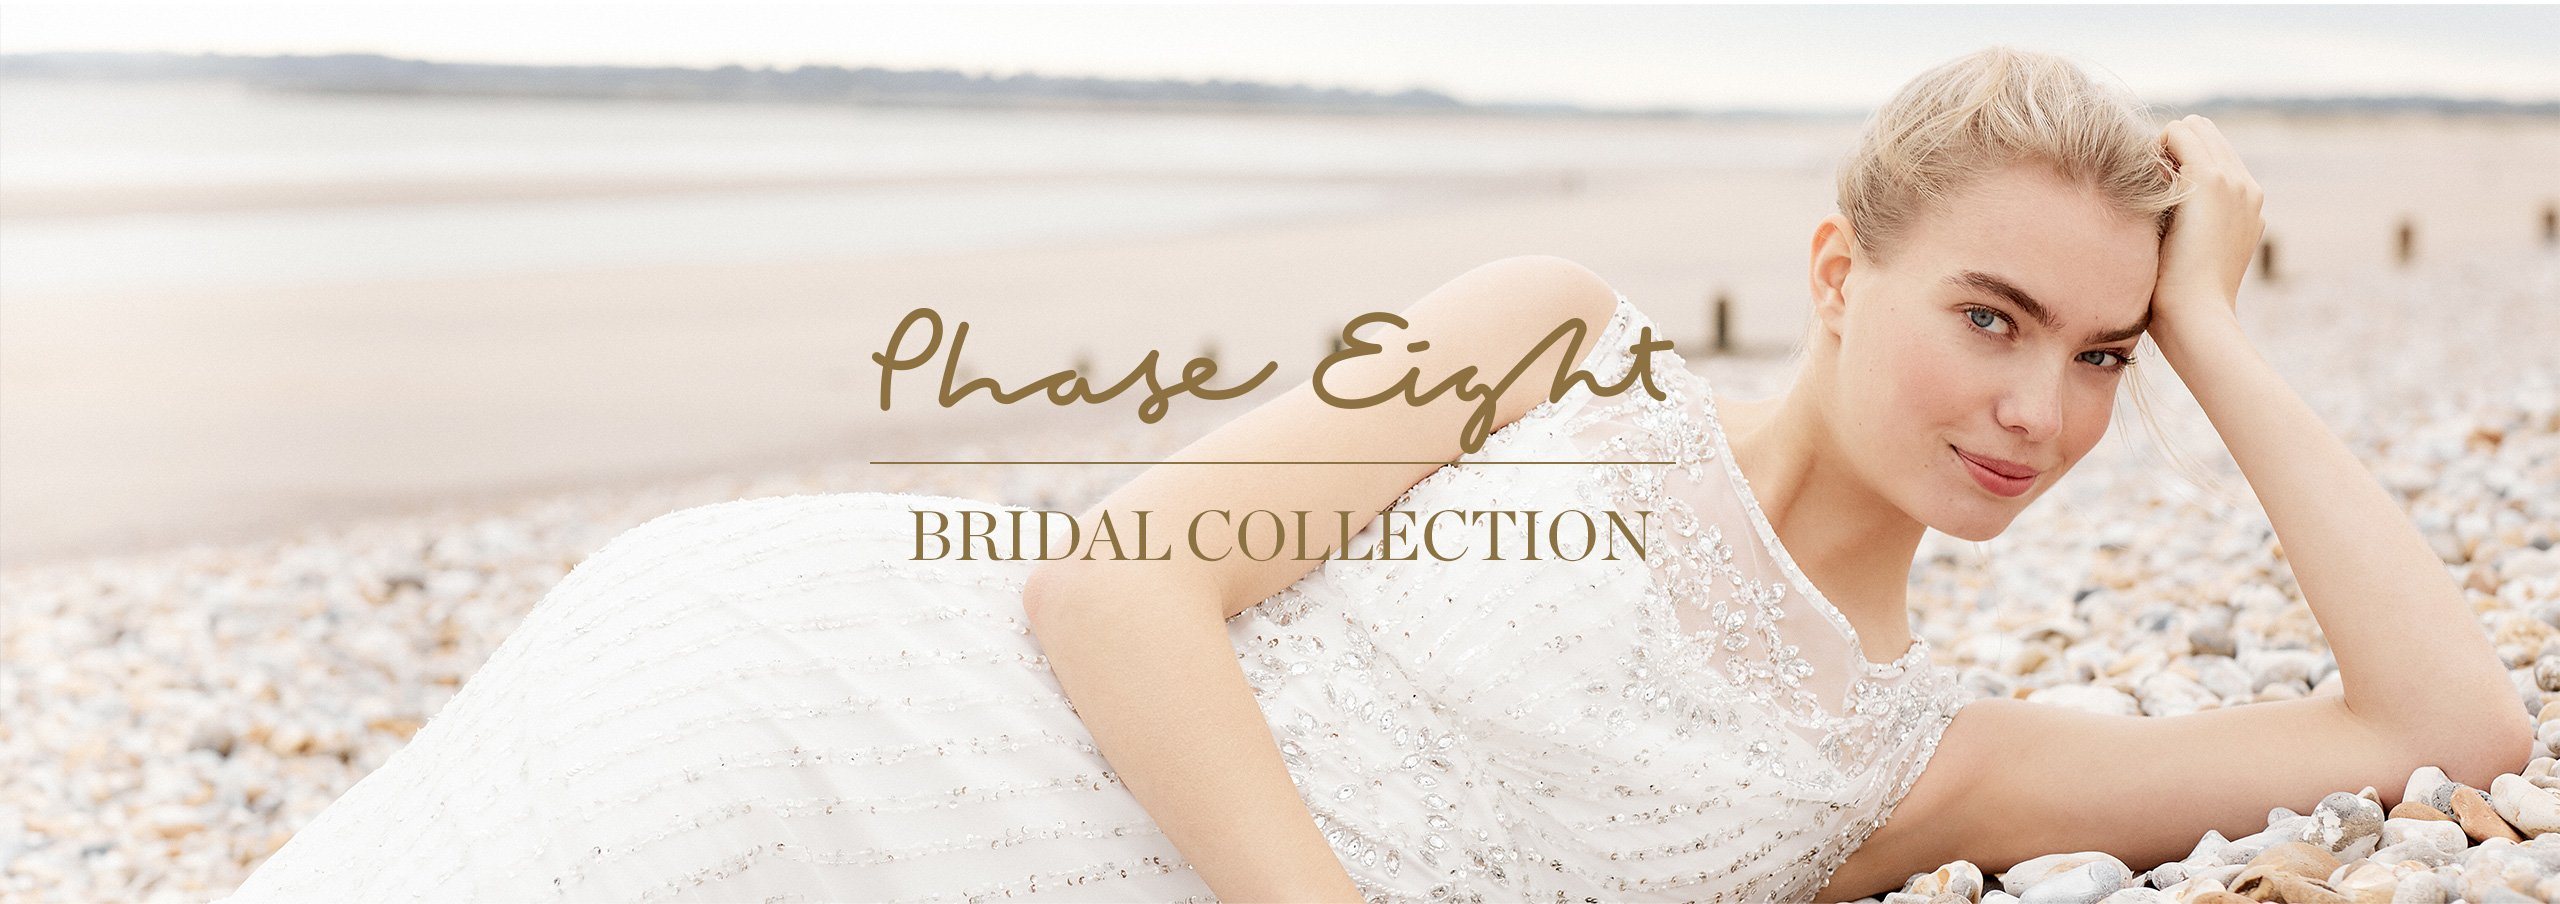 Phase Eight Bridal Collection